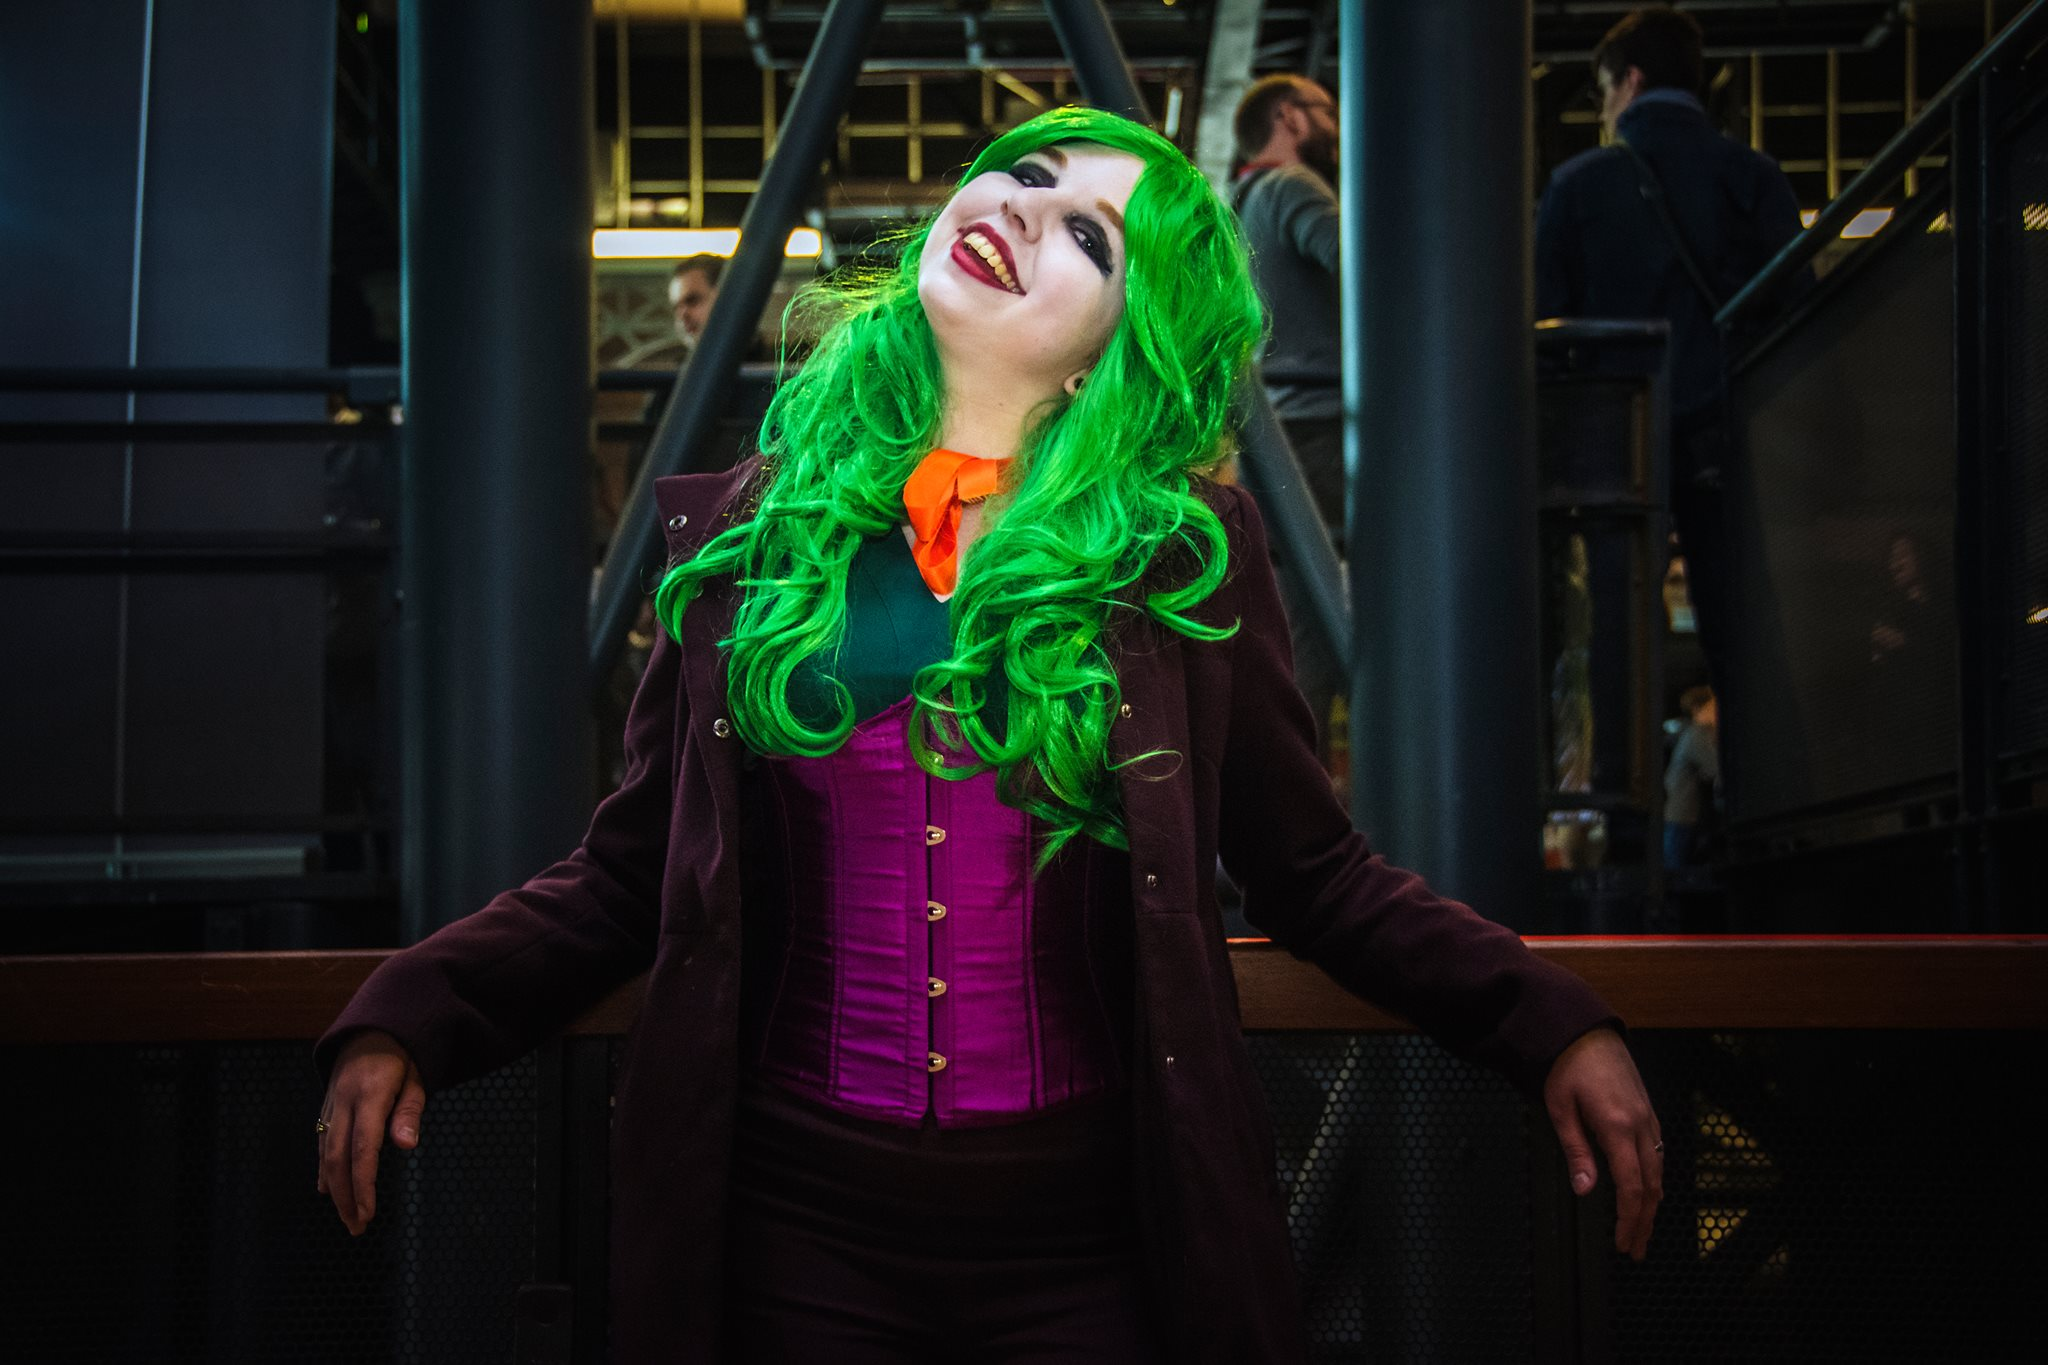 Les cosplays de la Comic Con Paris 2016 #cosplay